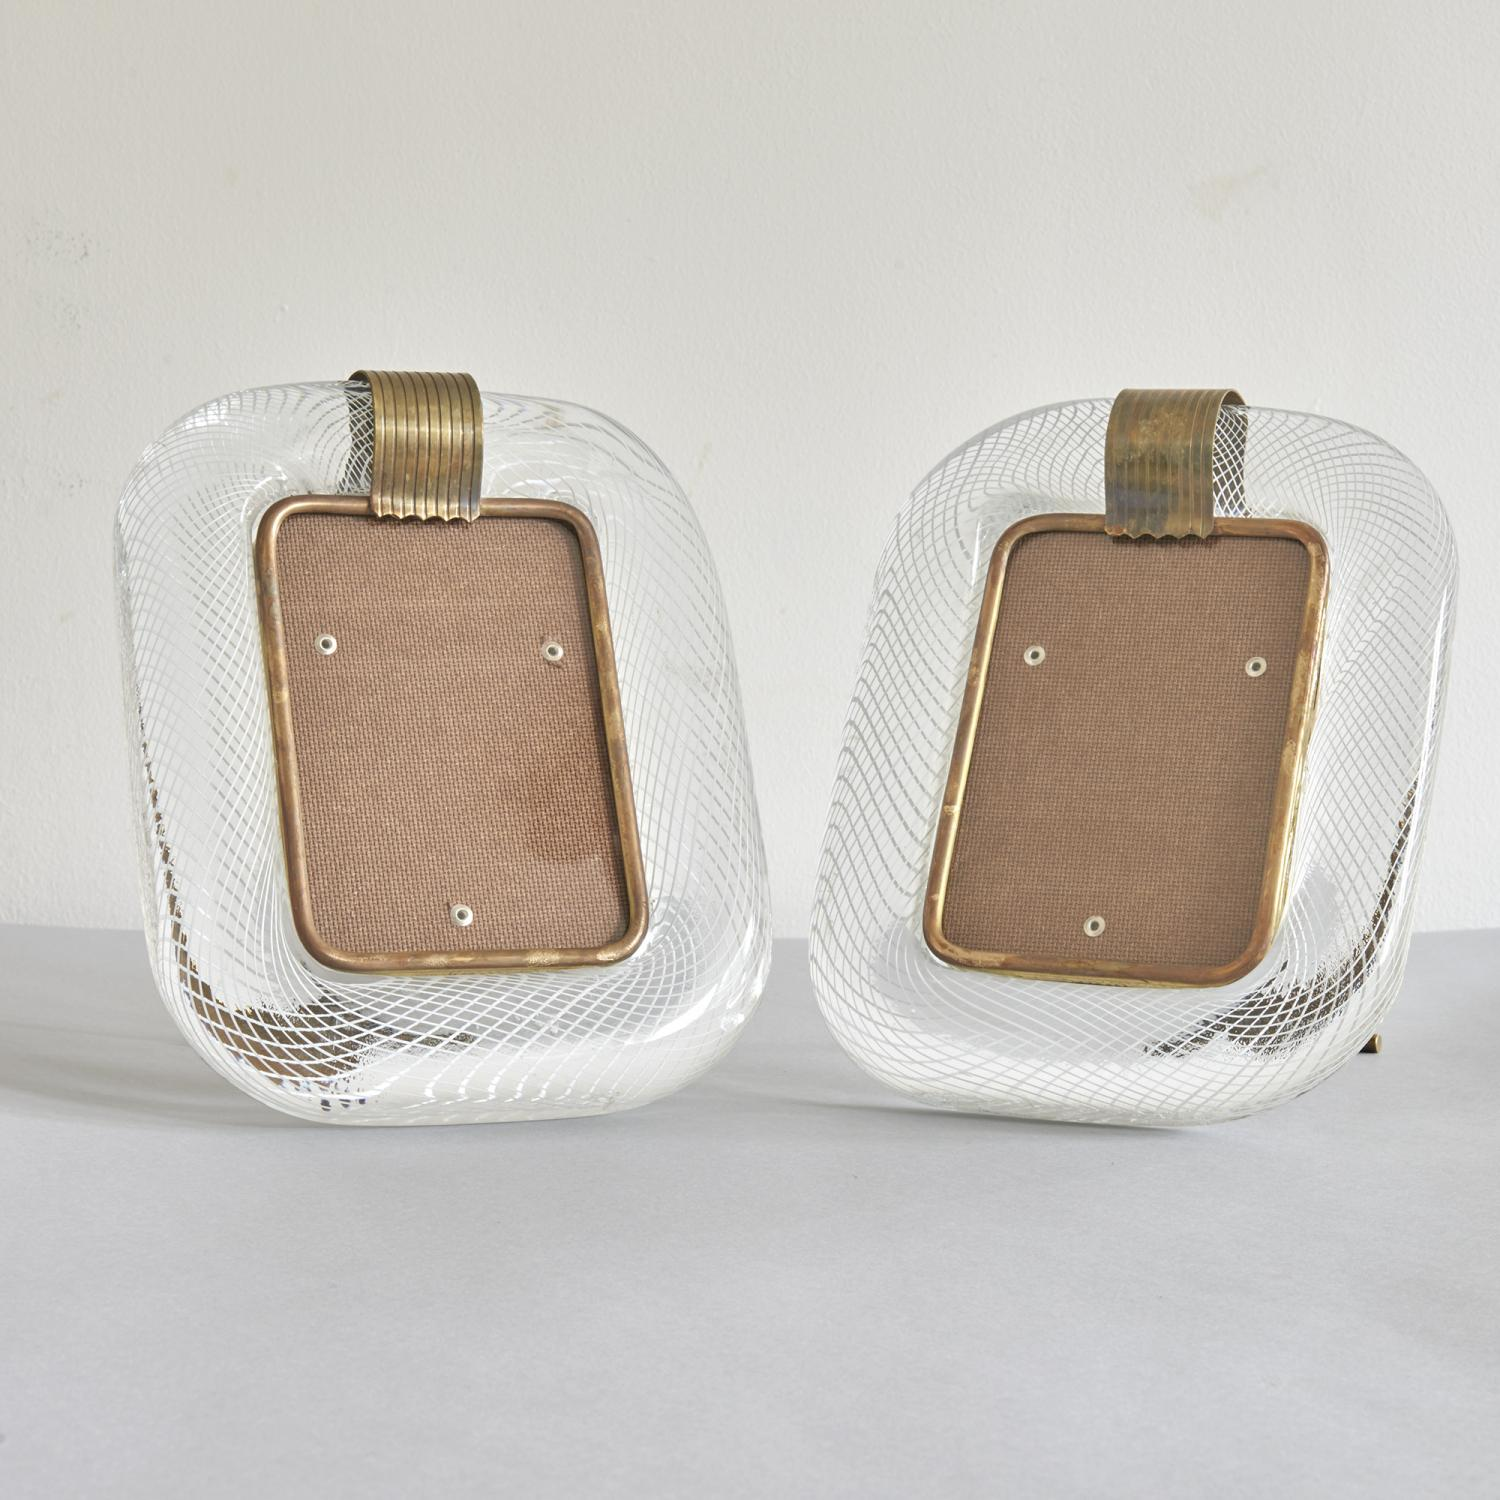 Pair of Carlo Scarpa for Venini photo frames